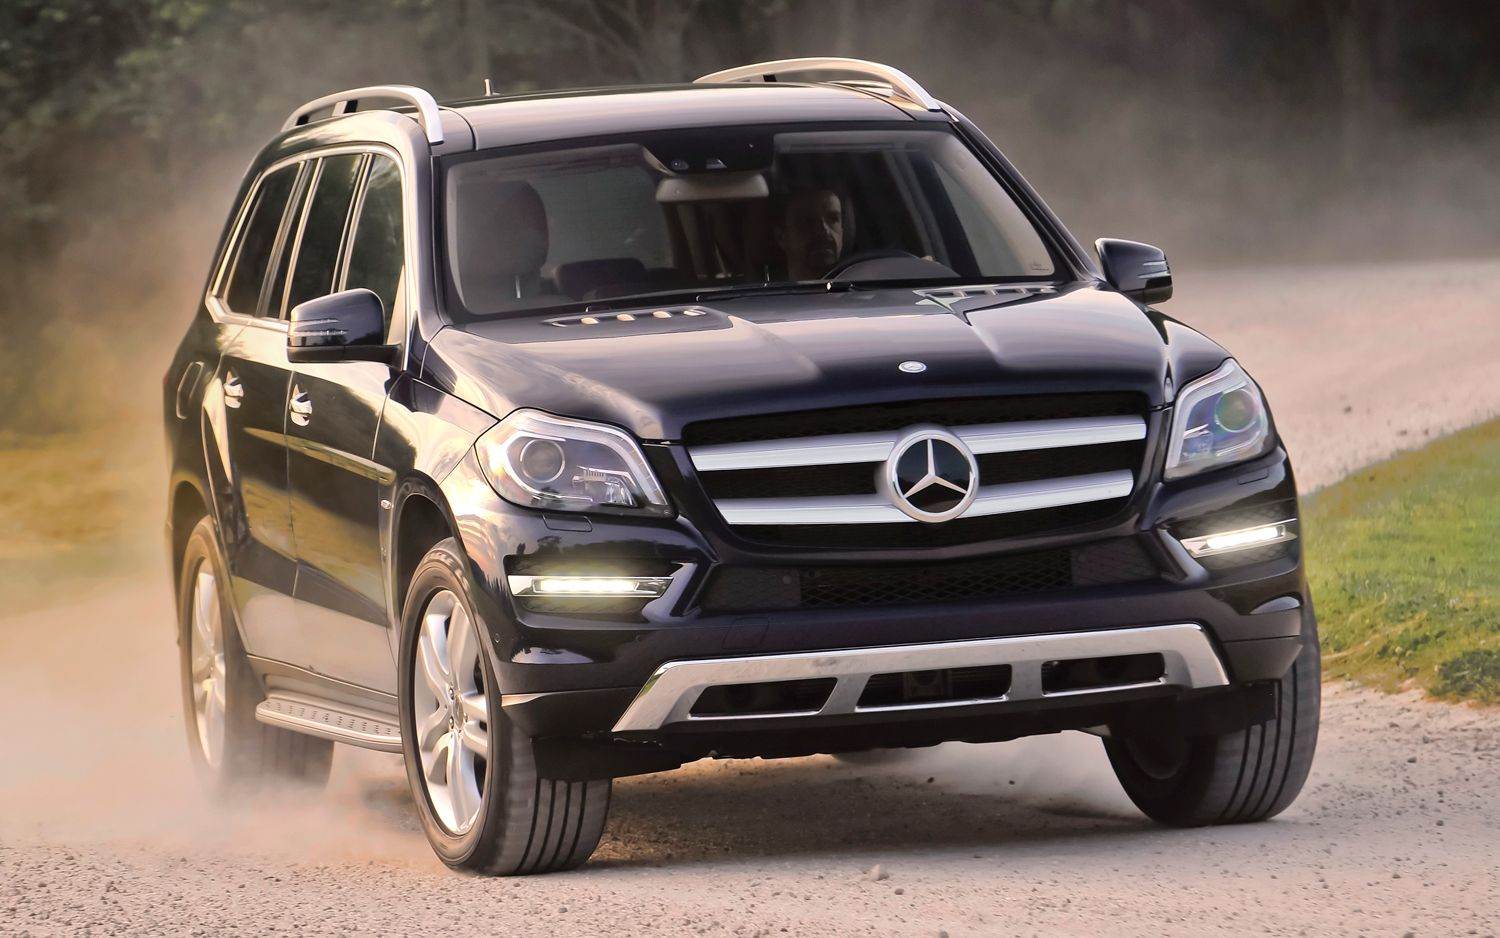 2013 Mercedes Benz Gl450 Vs 2012 Mercedes Benz E350 4matic Wagon